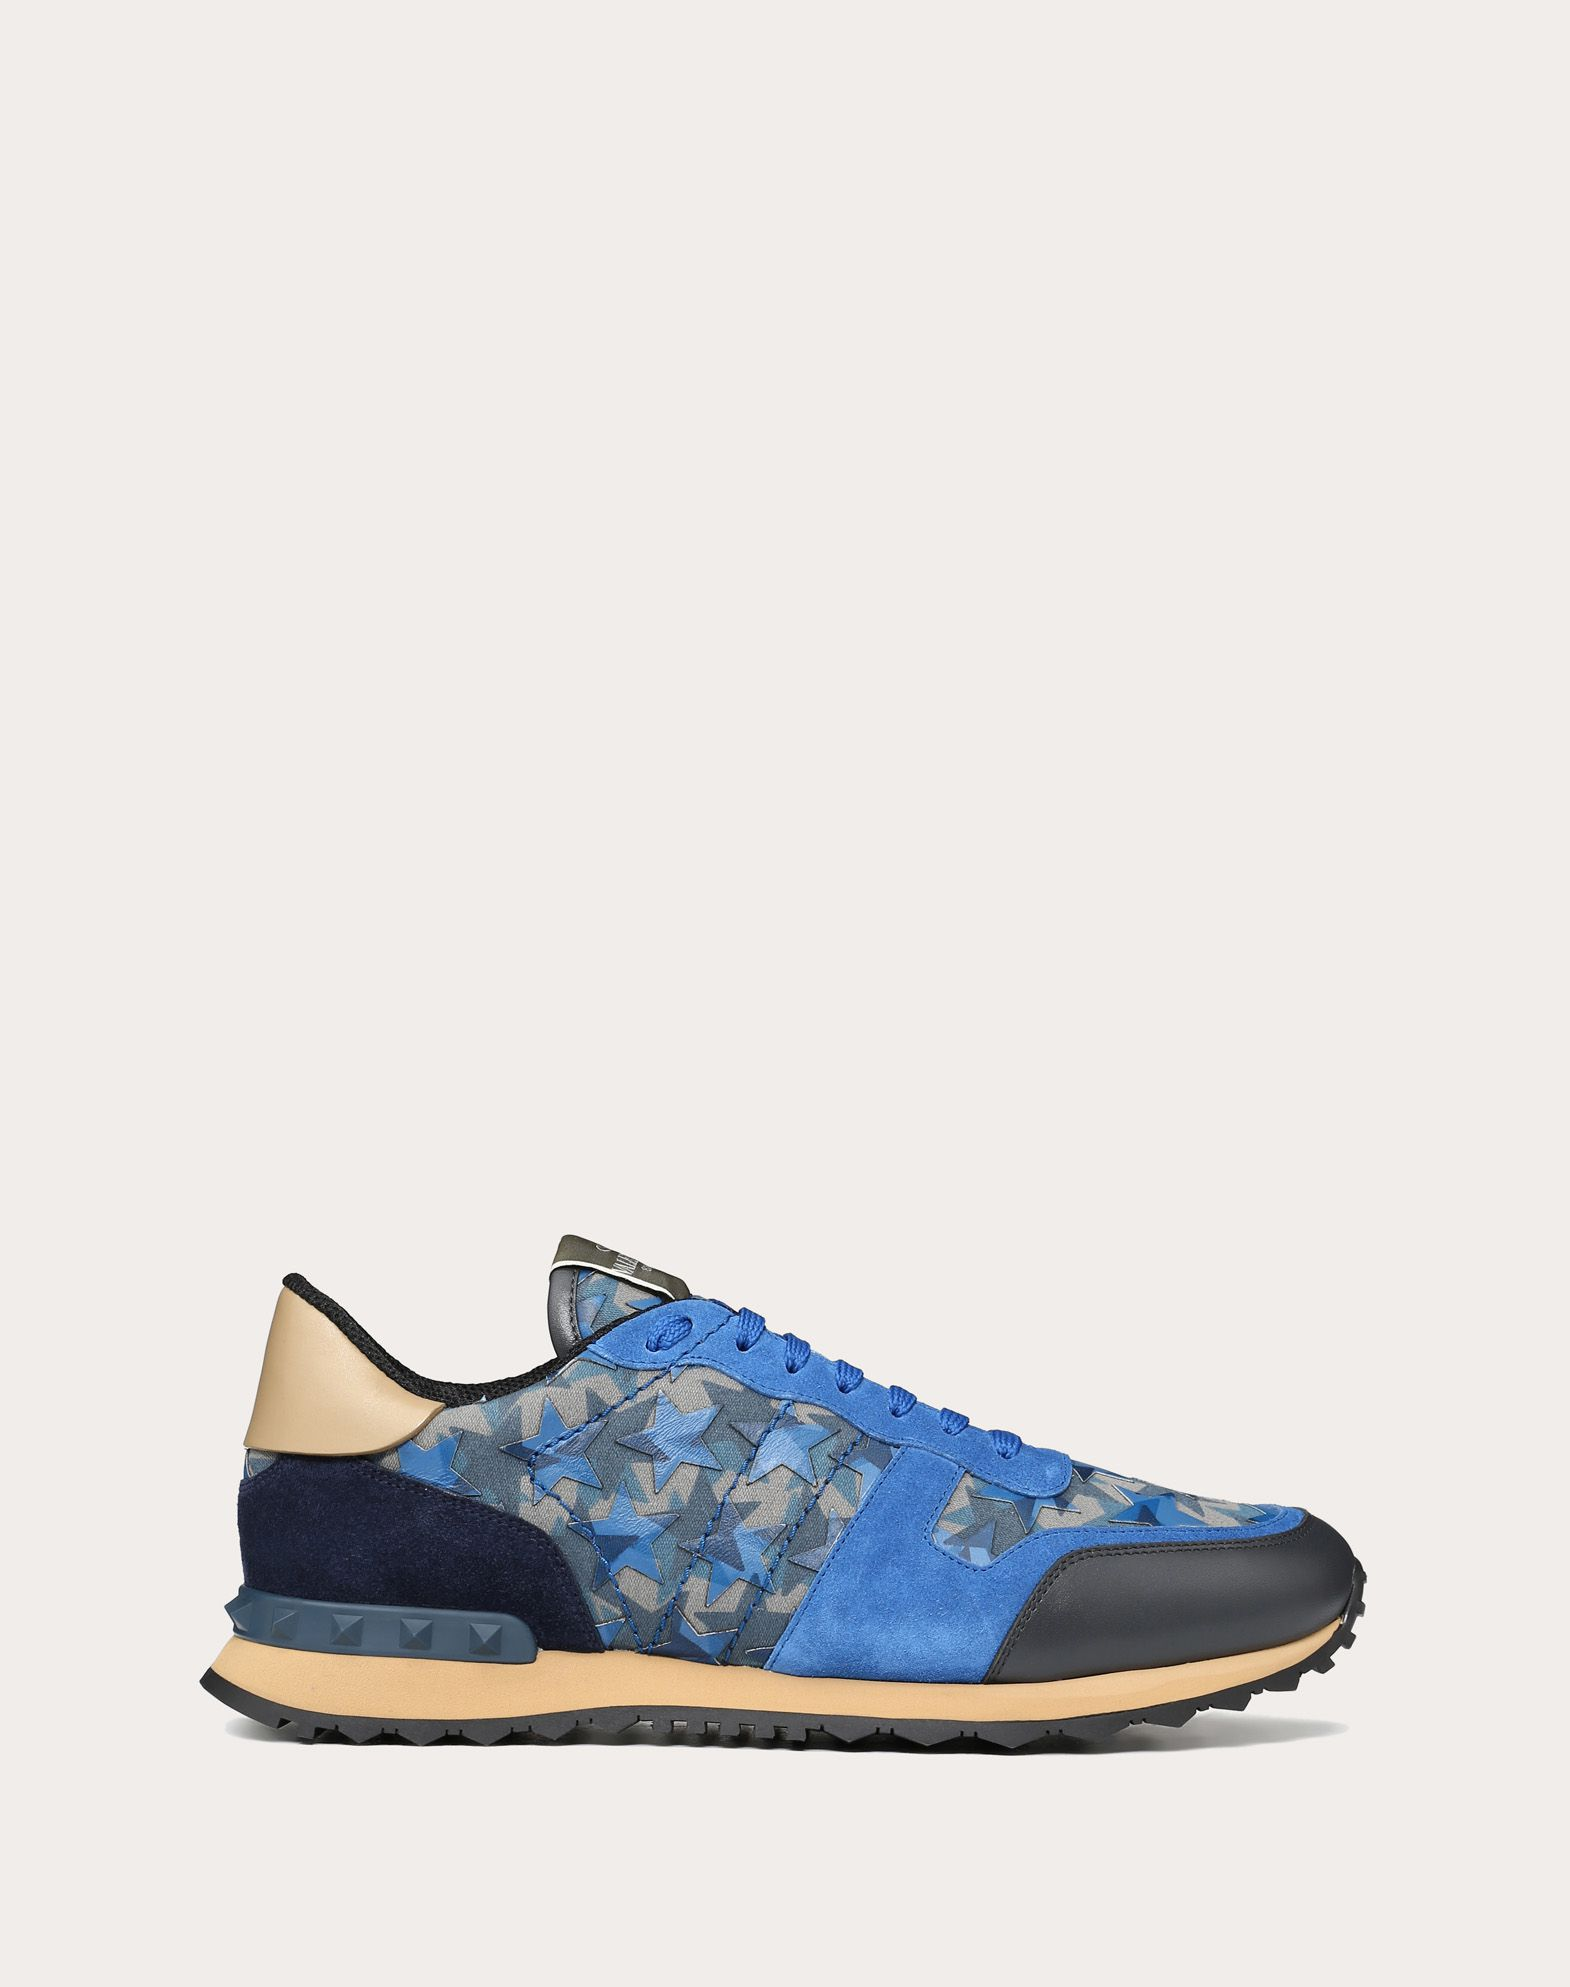 ROCKRUNNER TRAINER WITH STARS